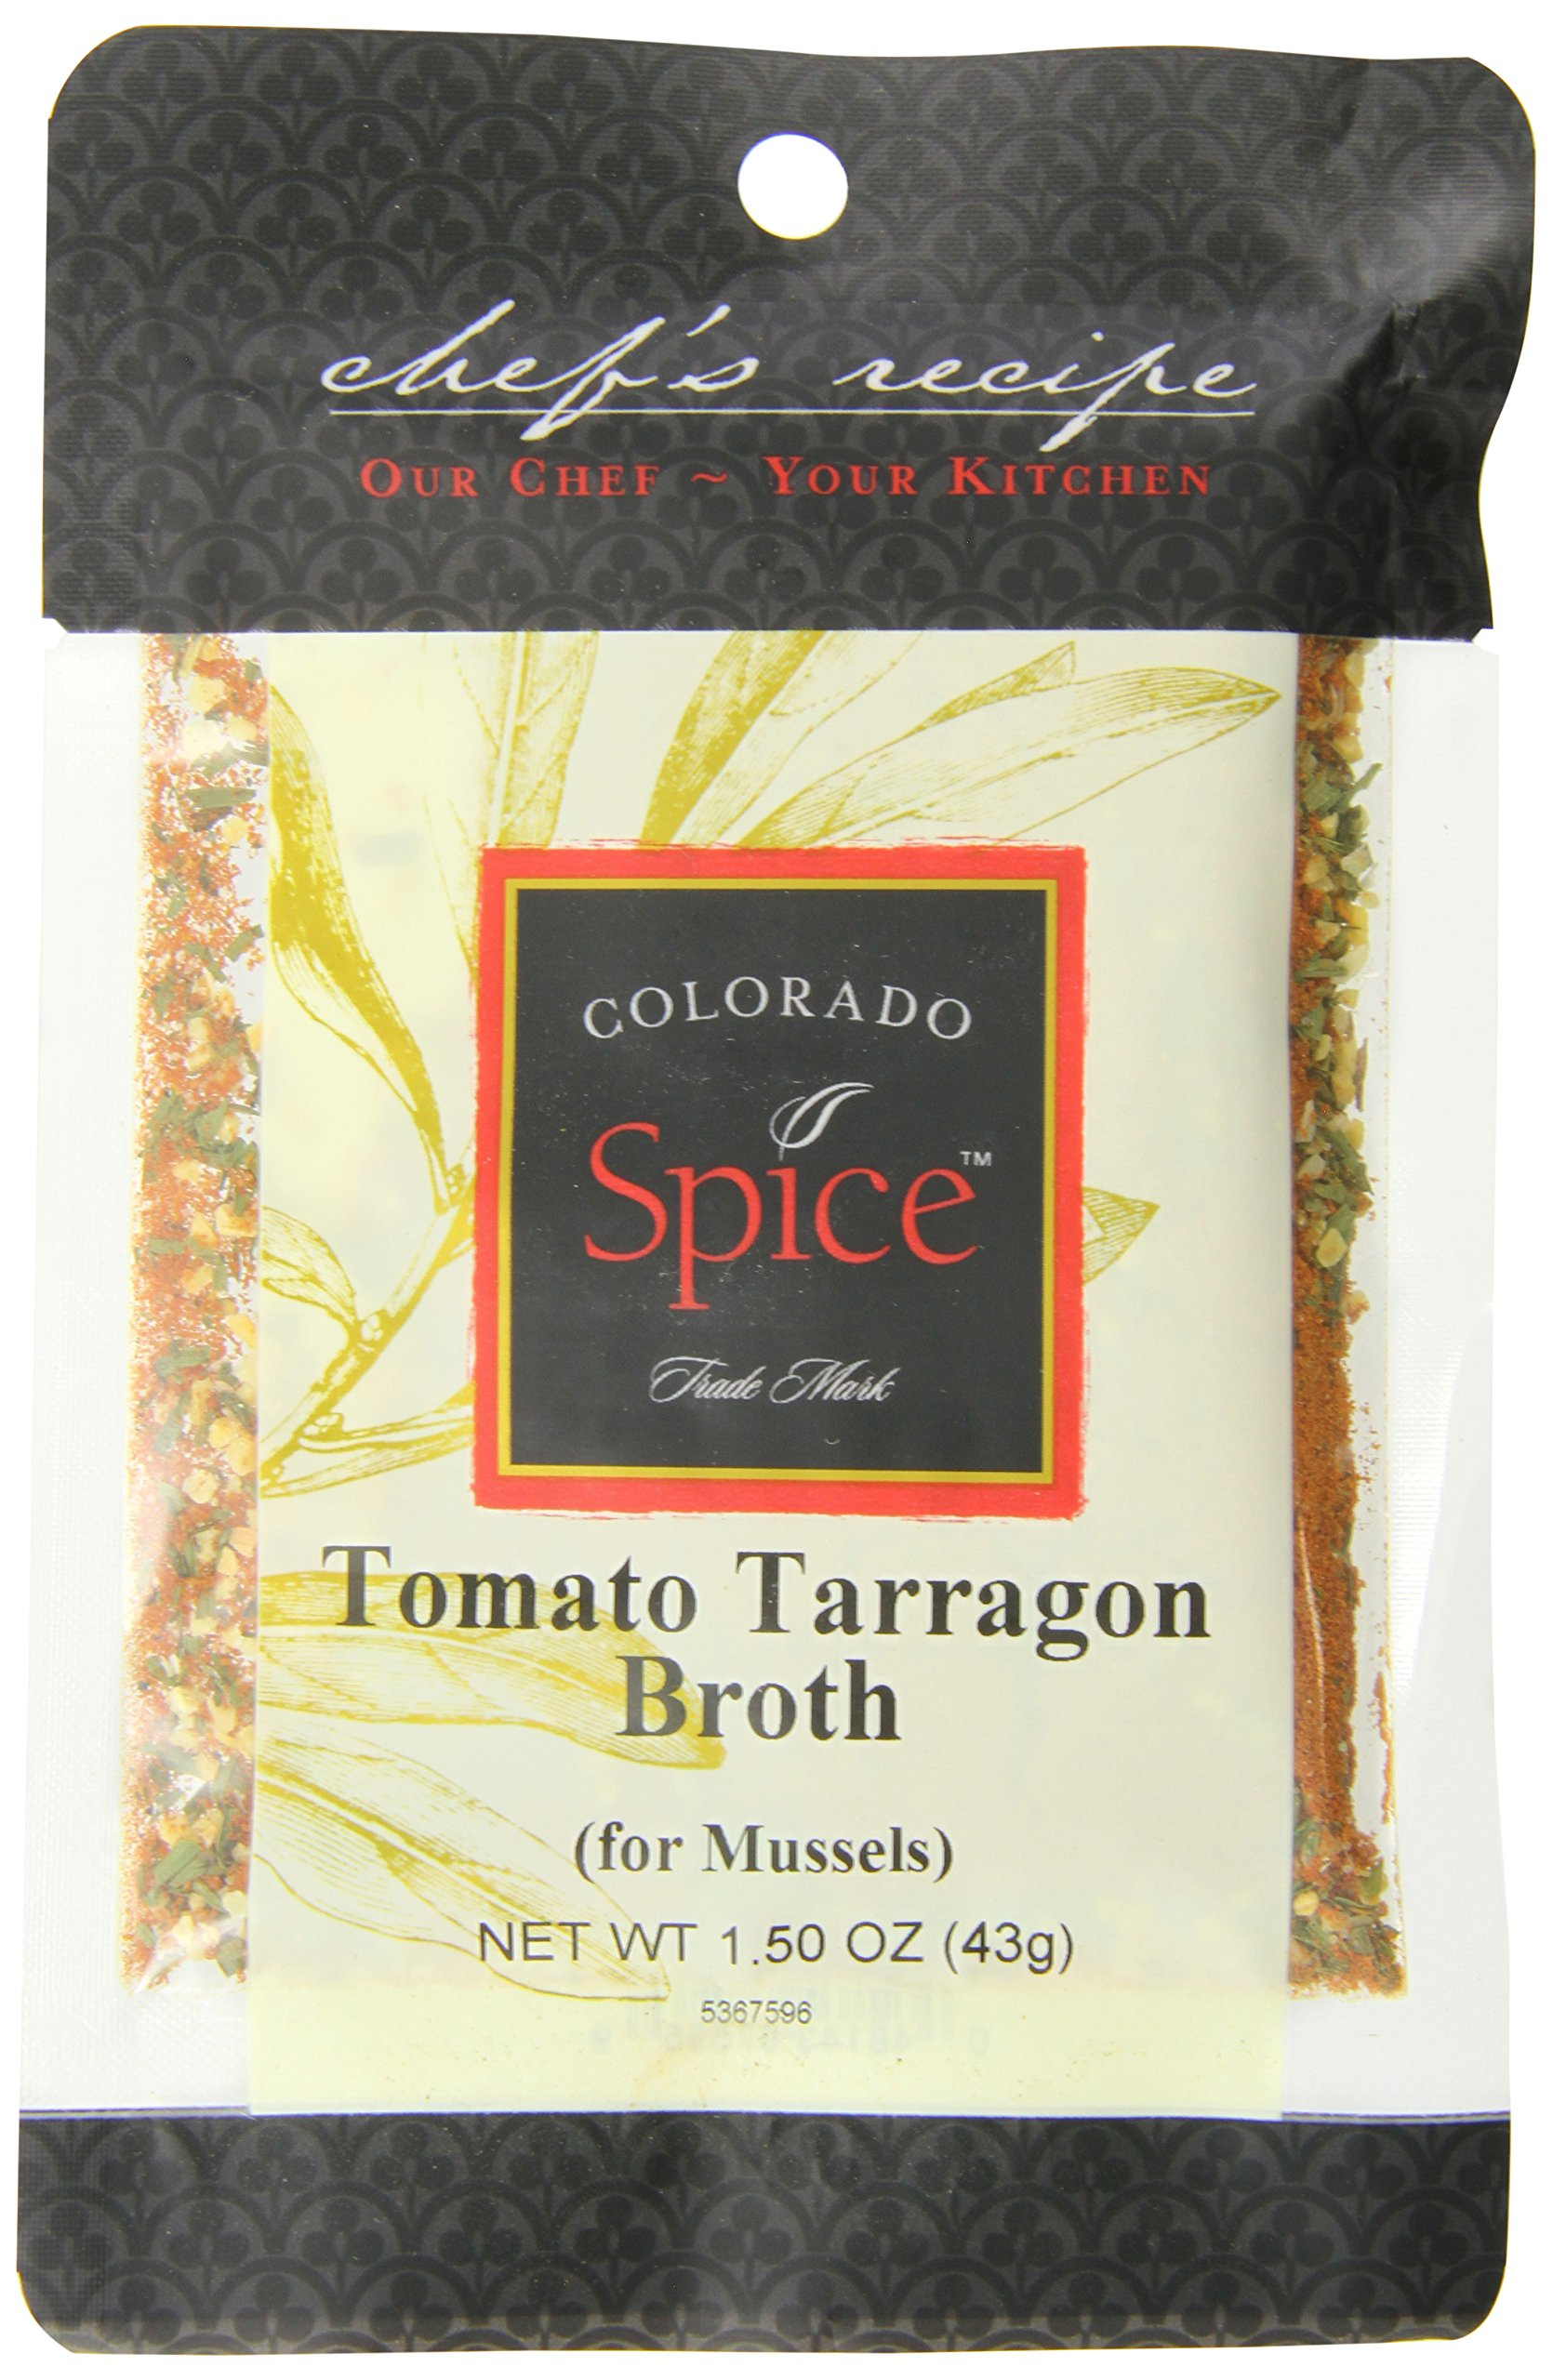 Colorado Spice Tomato Tarragon Broth for Mussels, 1.5 Ounce (Pack of 12)